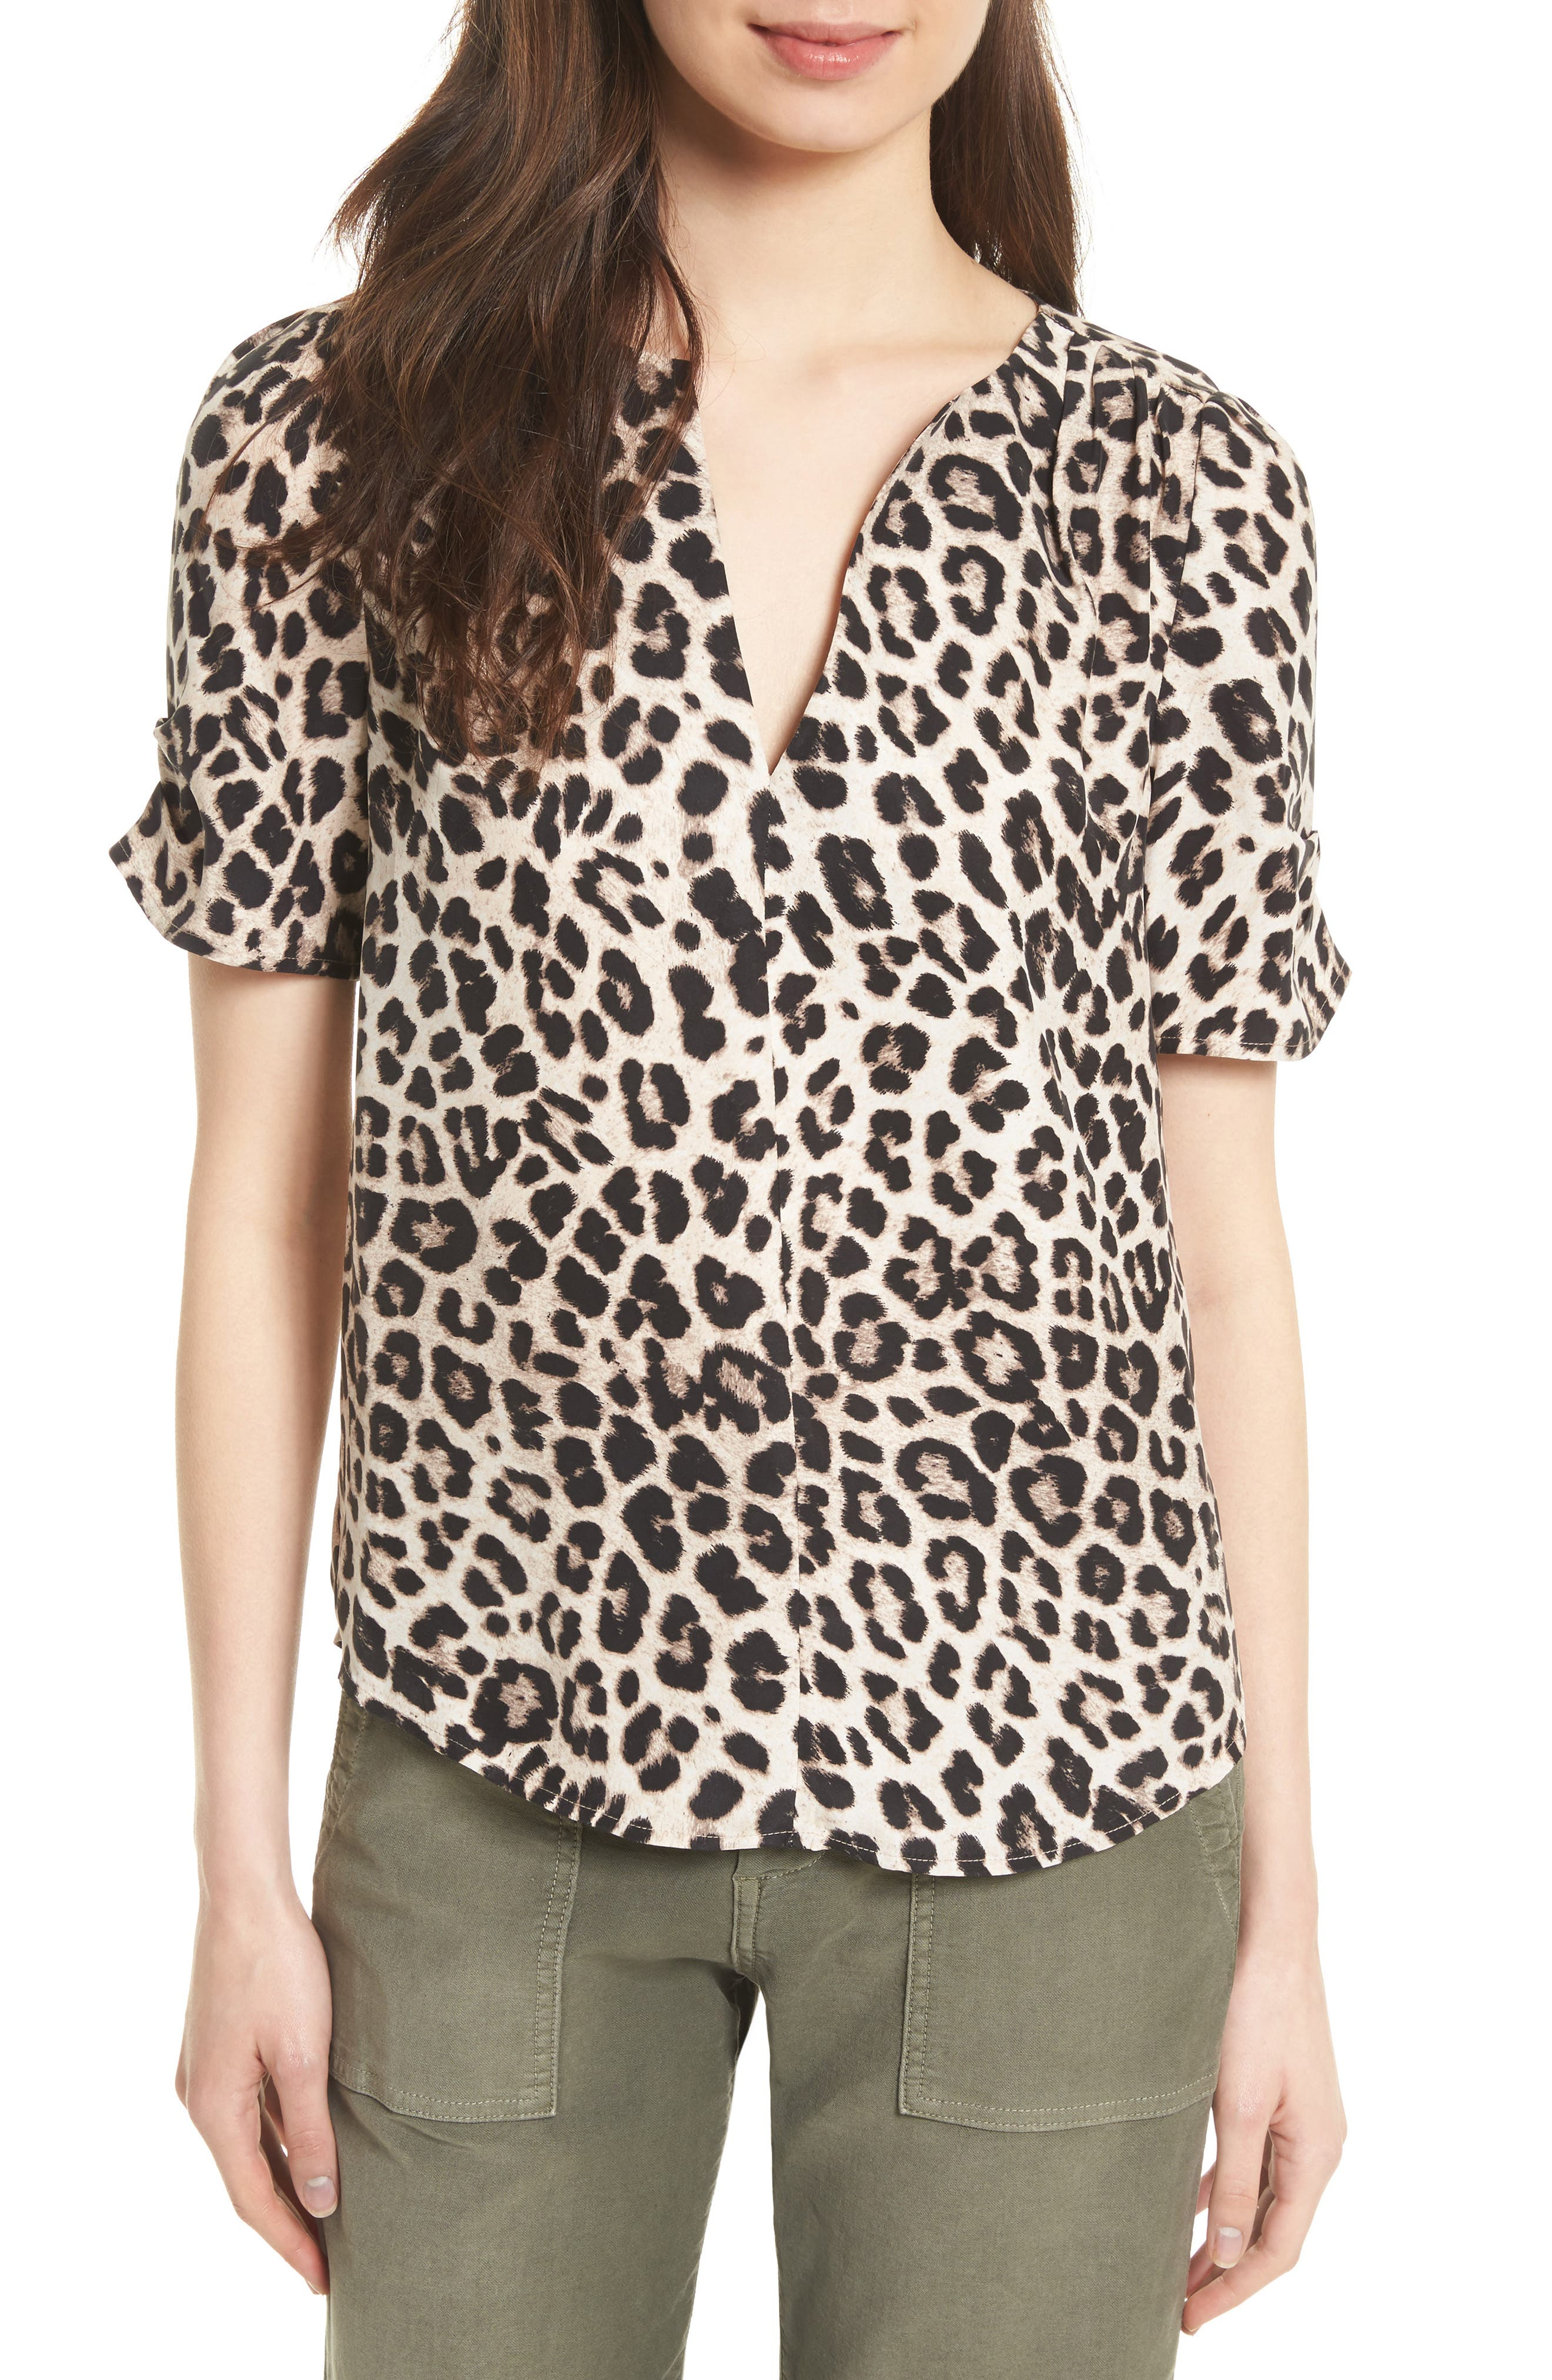 Alternate Image 1 Selected - Joie Amone Leopard Print Silk Top